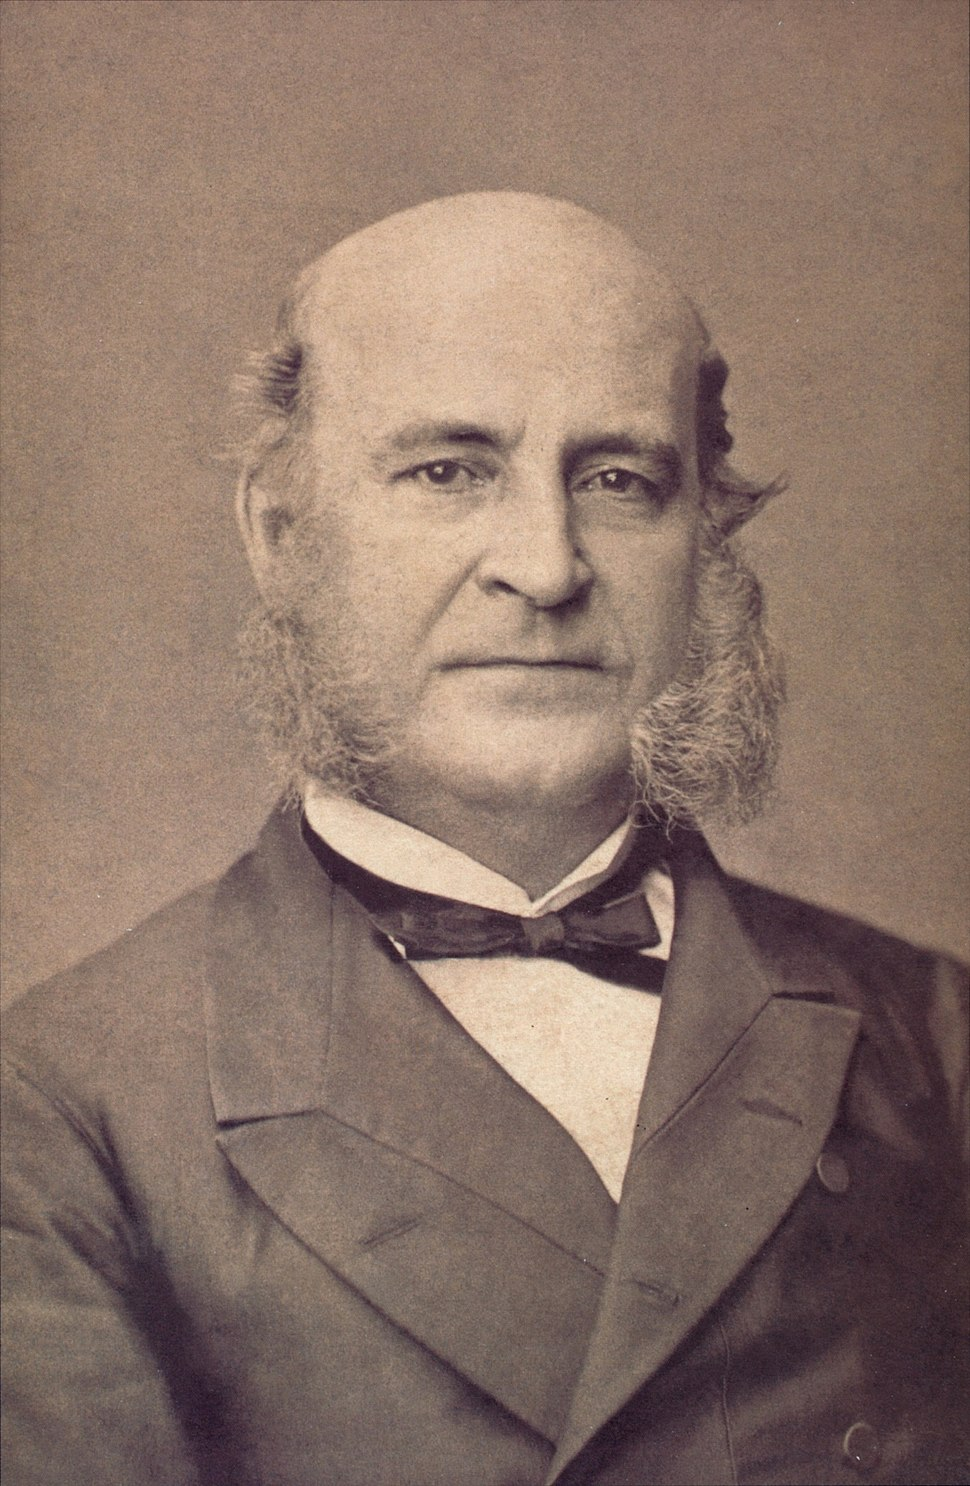 Photograph showing the head and shoulders of an older man with large sideburns and wearing a formal coat and black bow tie